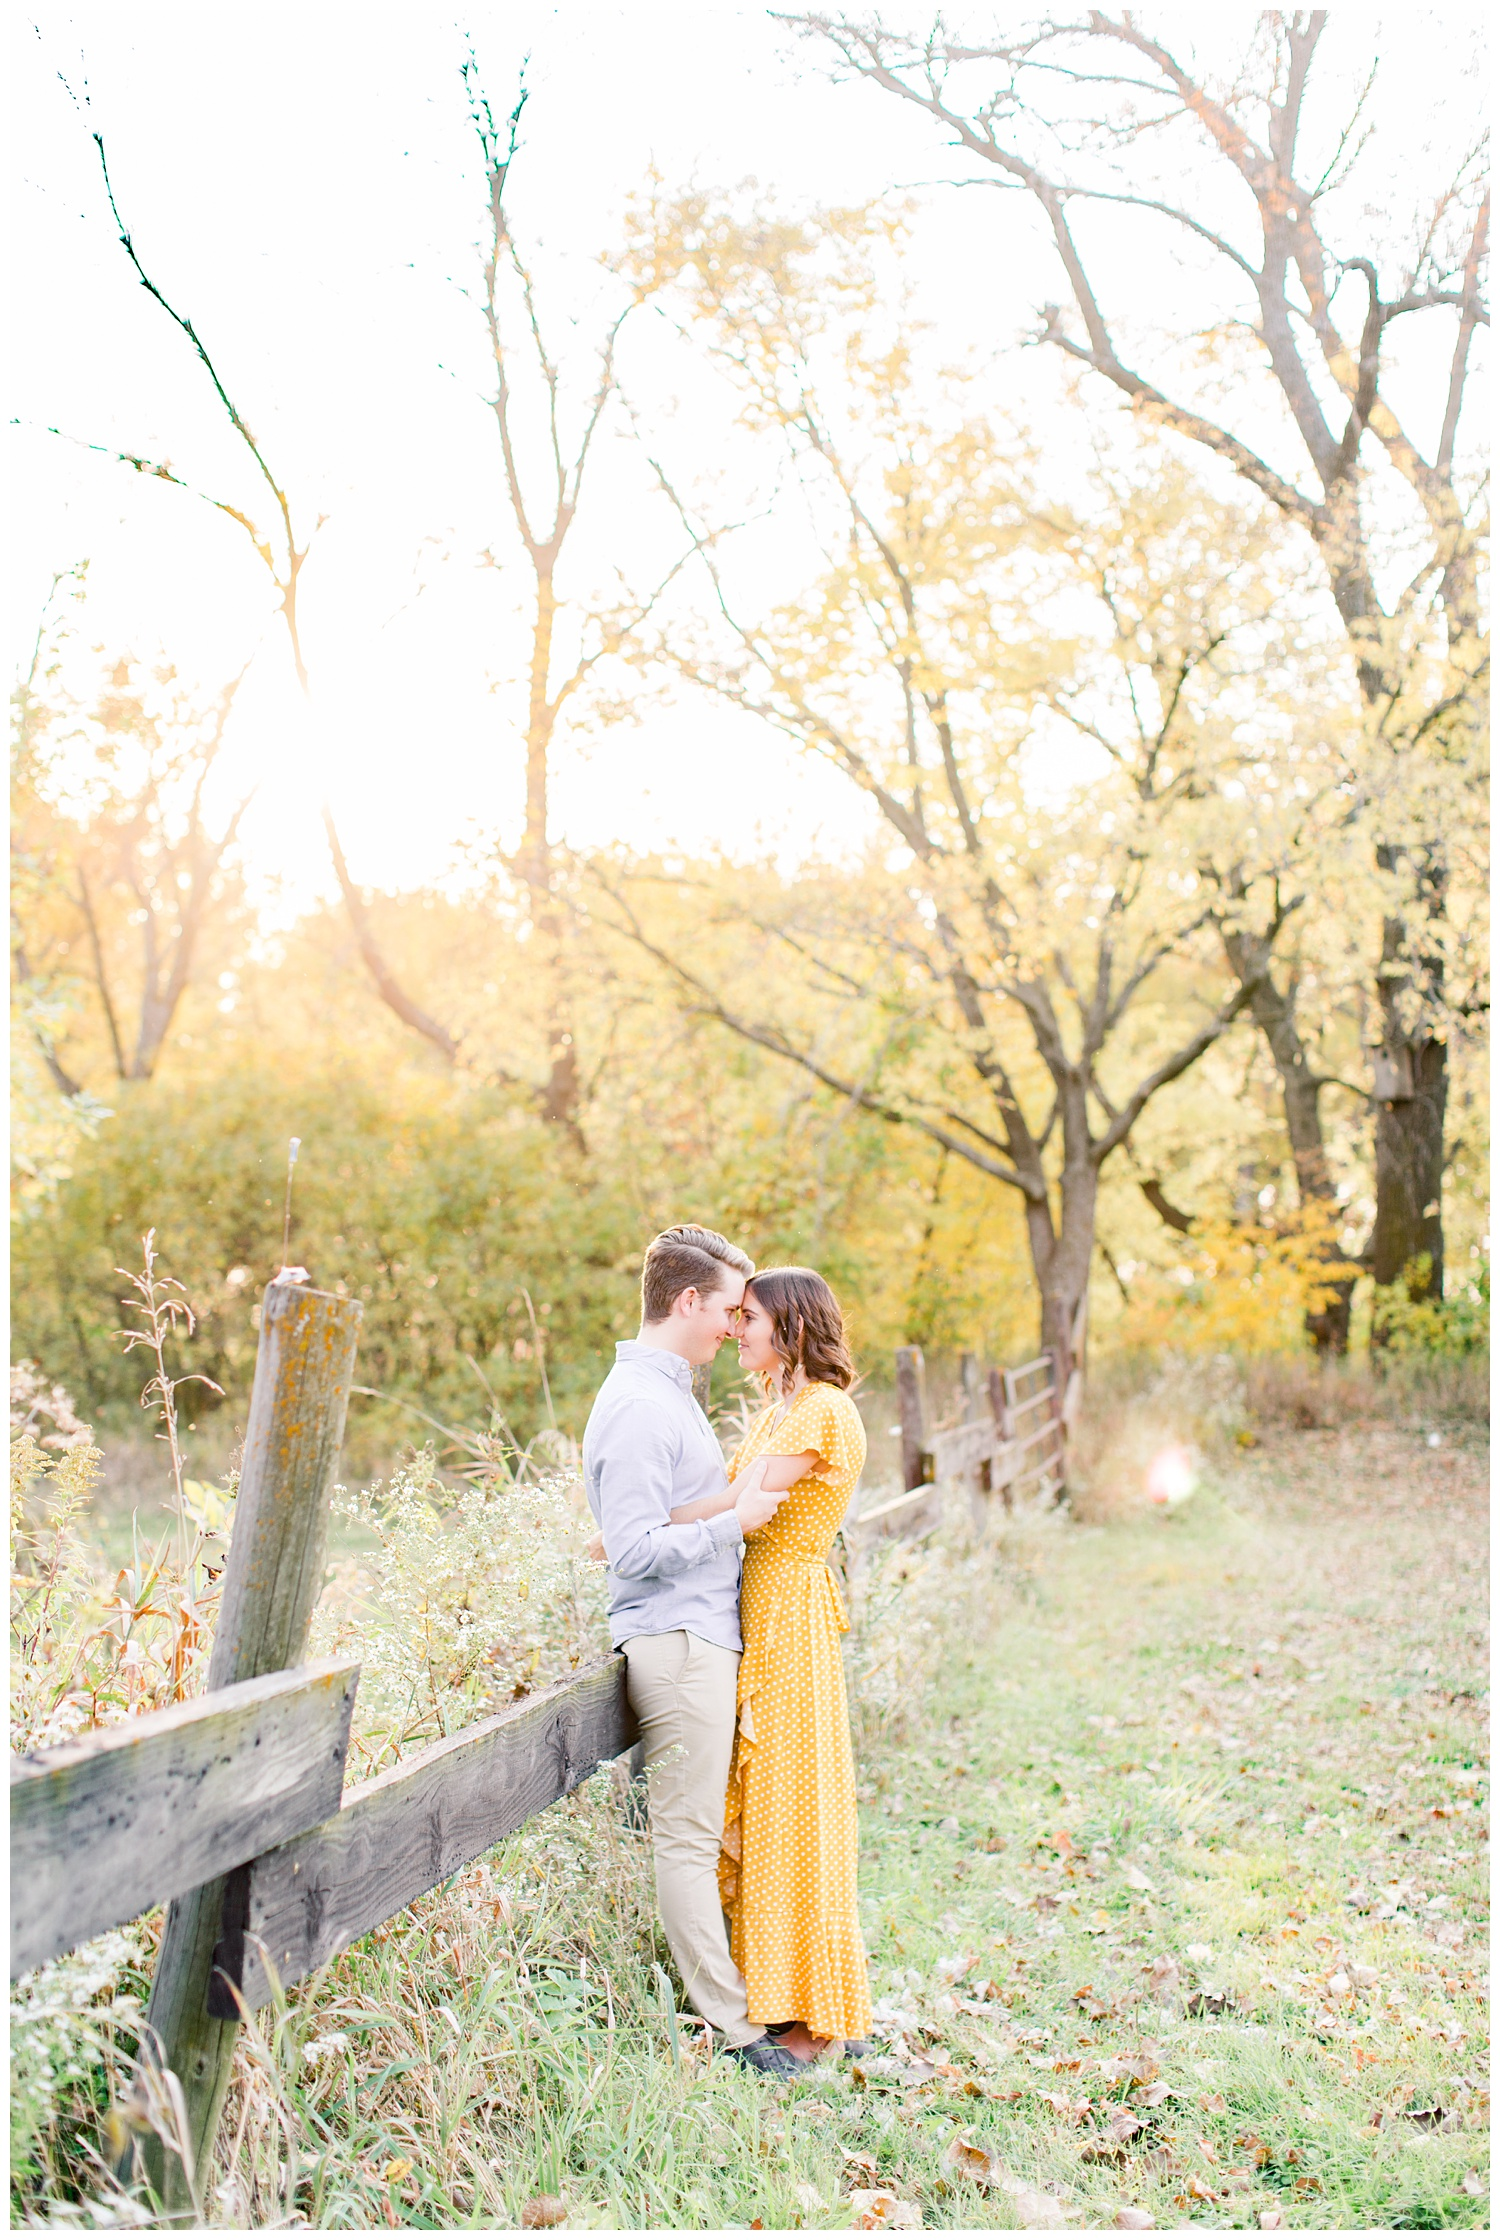 Jadi and Luke lean against a wooden fence post in a grassy field in Iowa during the fall for engagement photos | CB Studio